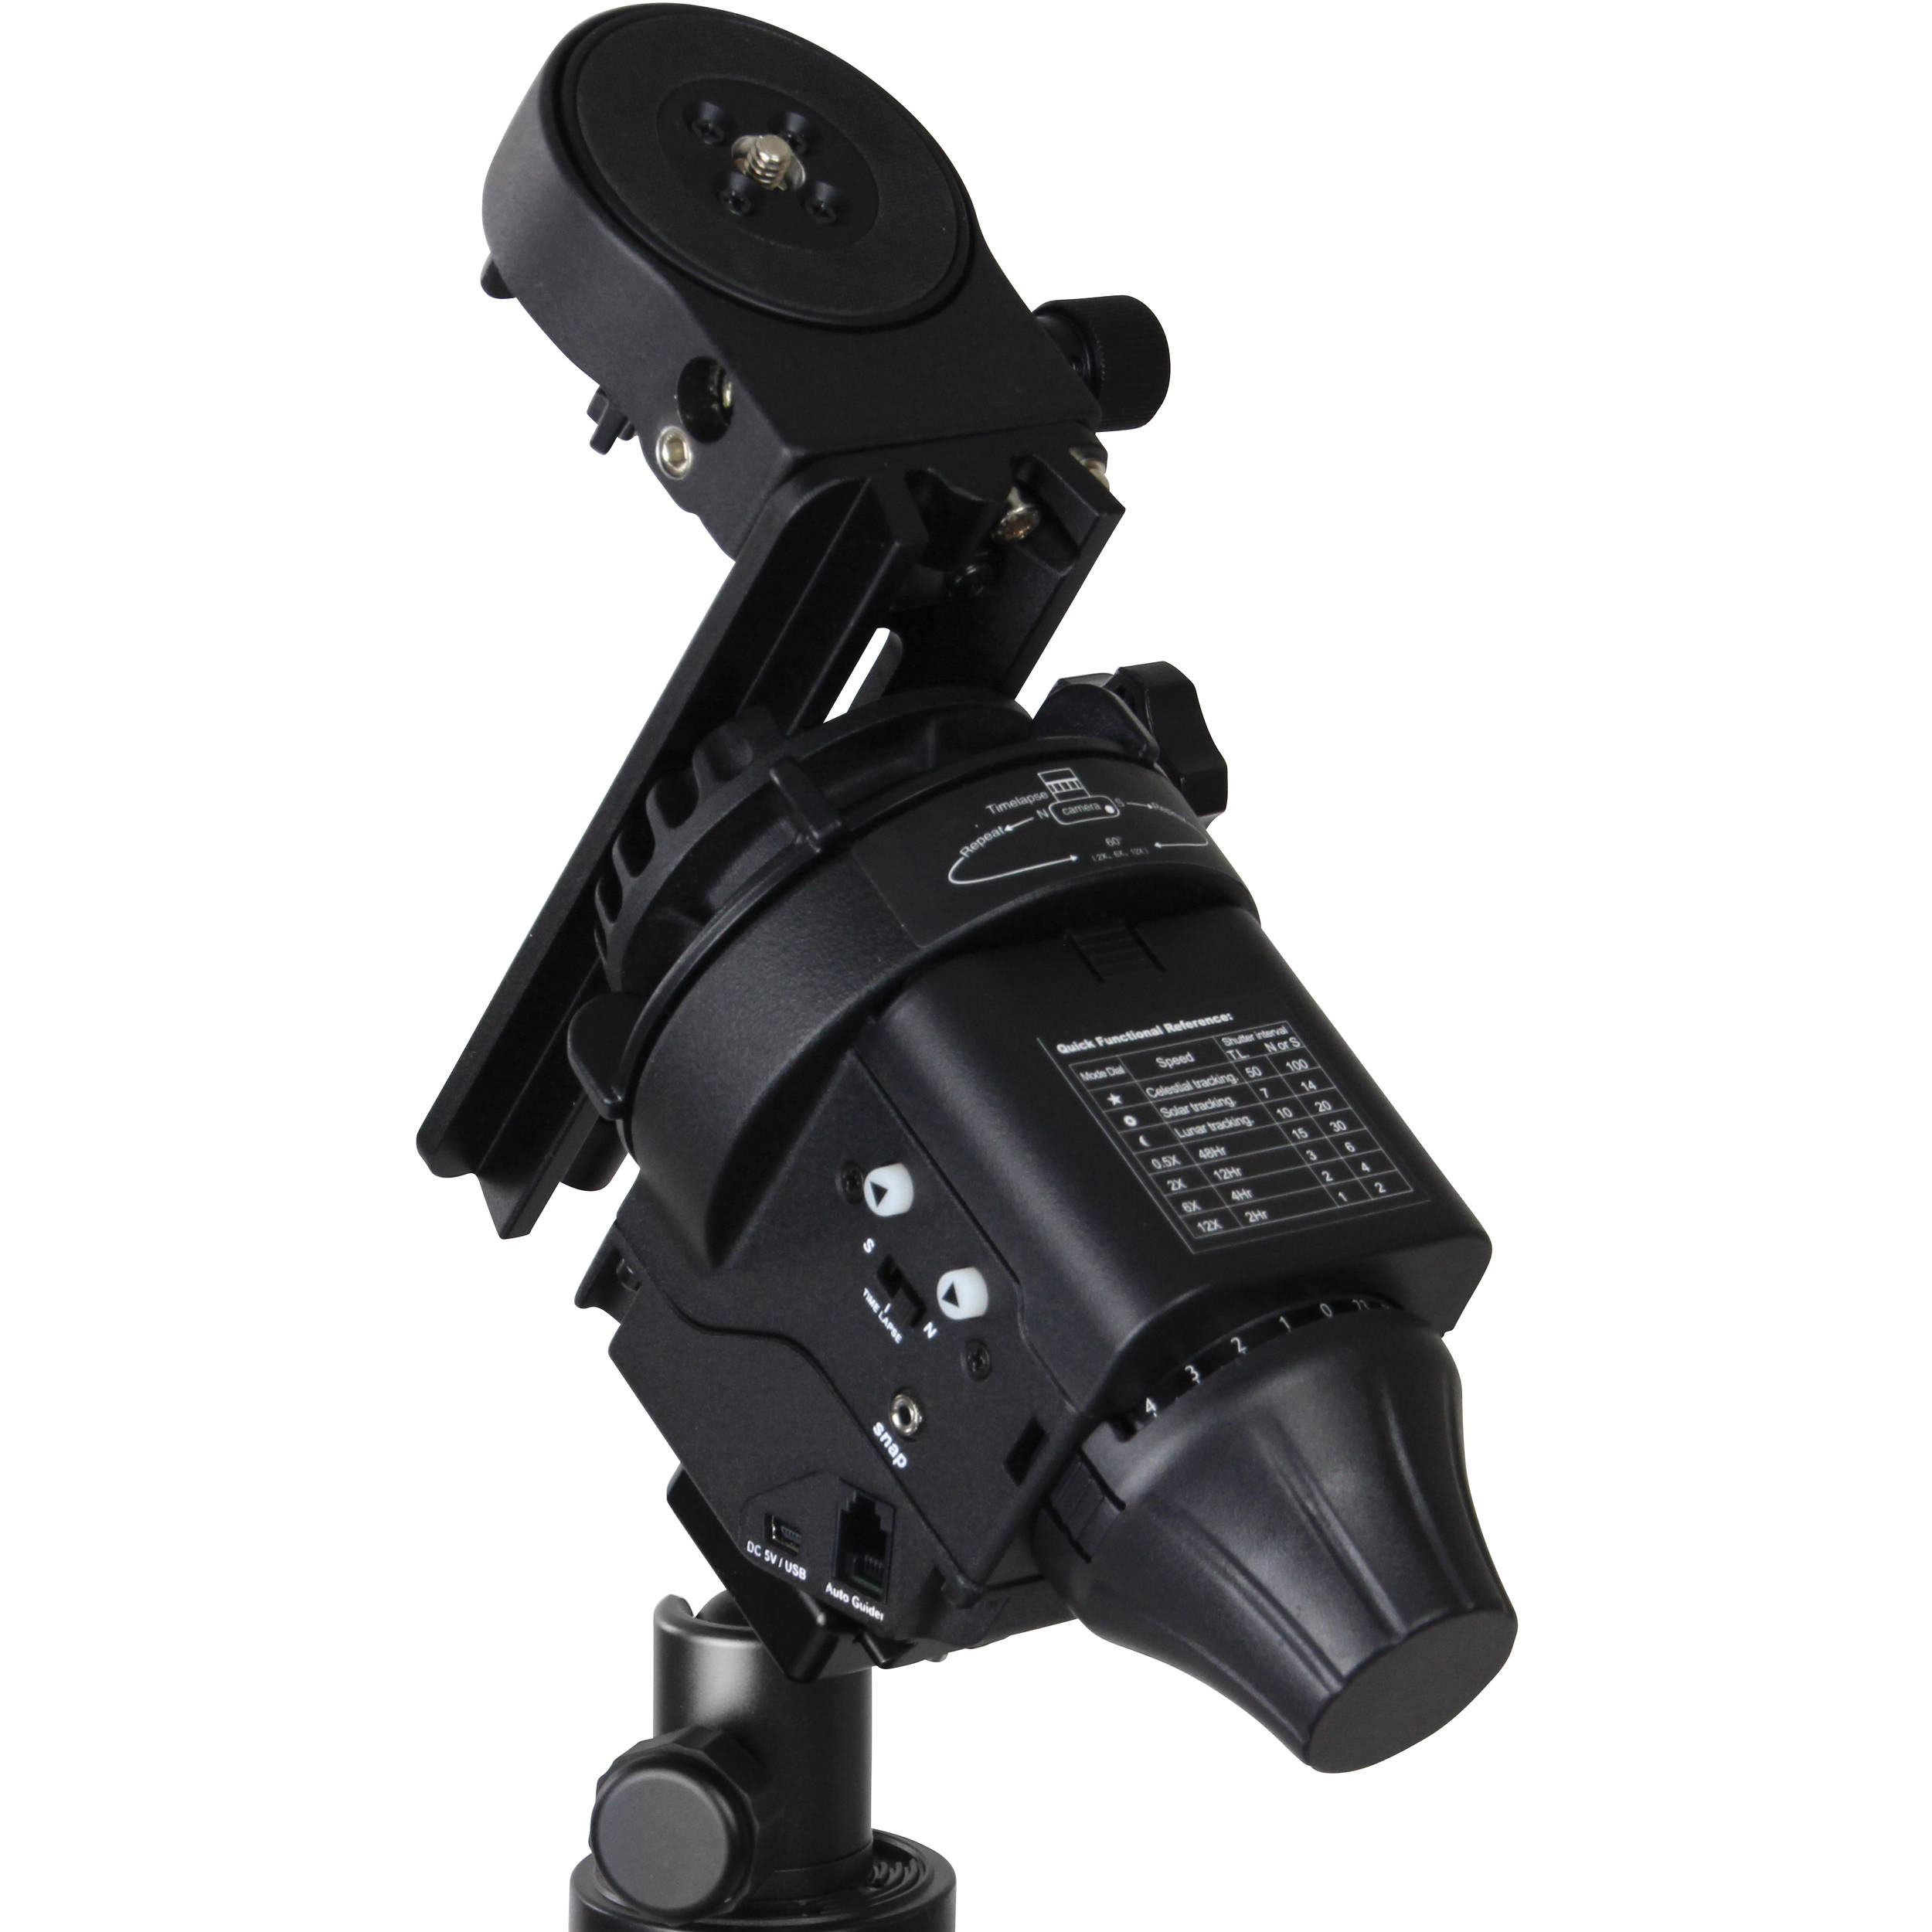 Sky watcher star adventurer motorized mount astro package for Motorized video camera mount